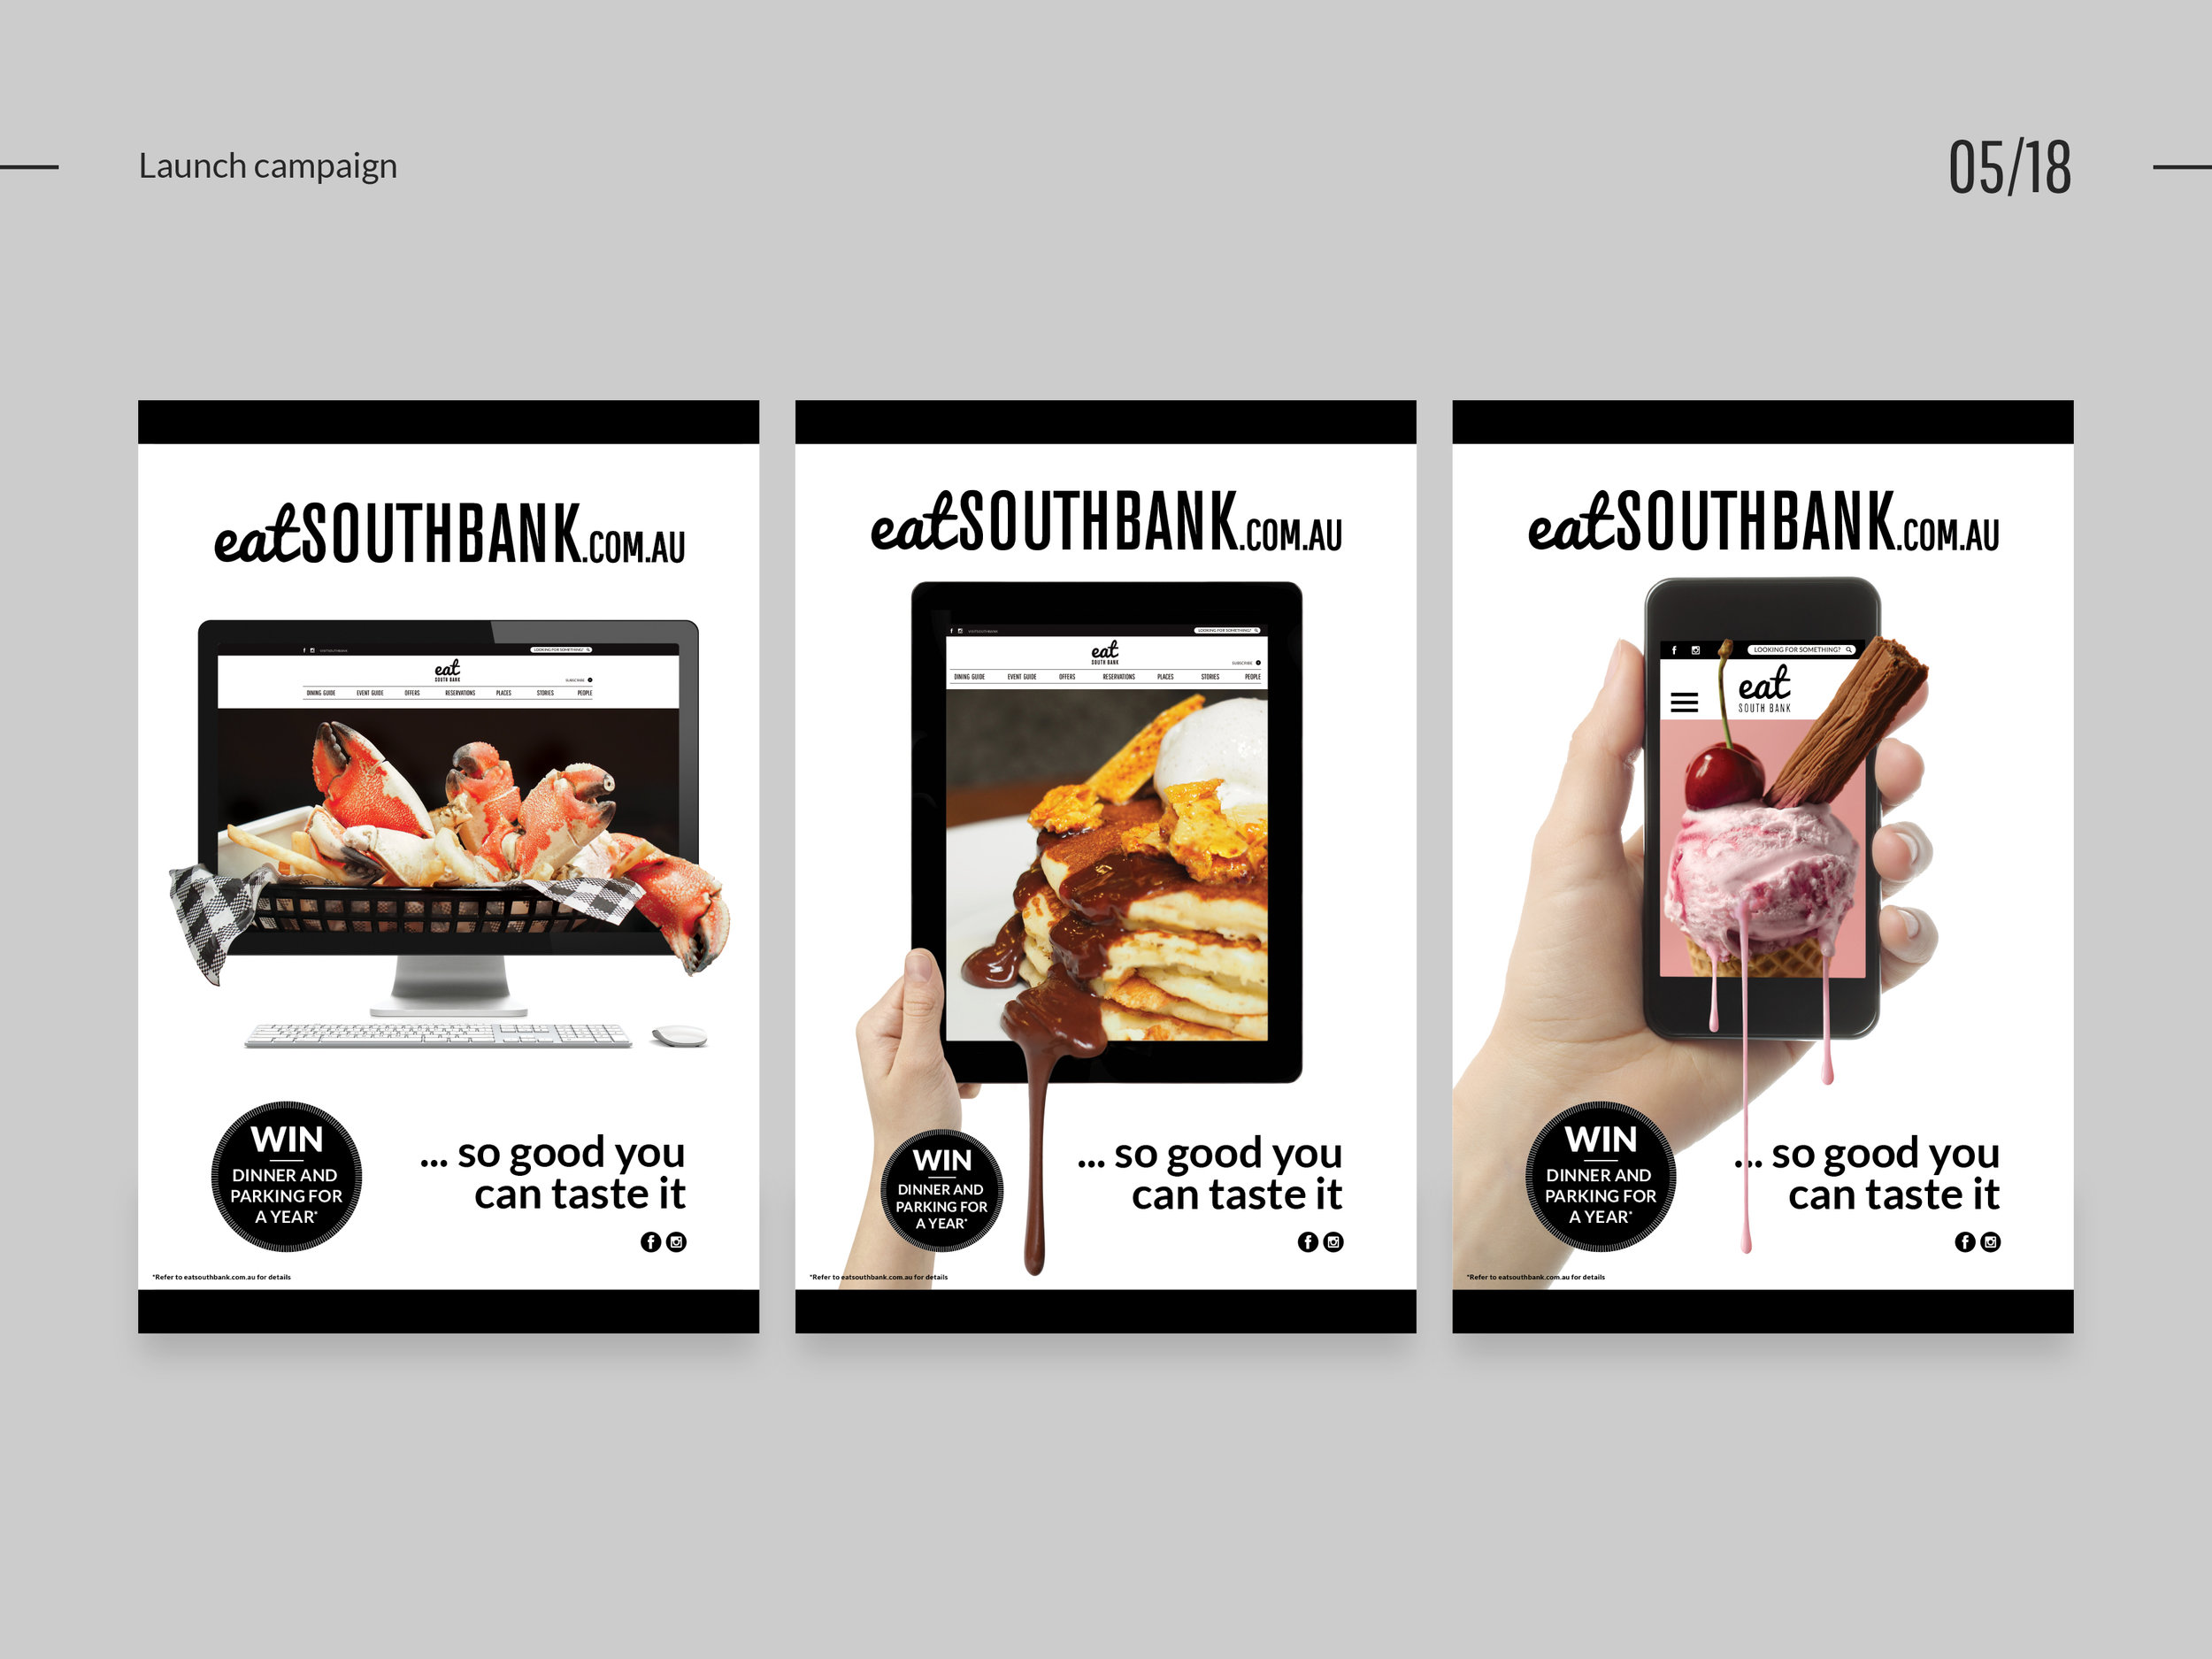 map-creative-eat-south-bank-launch-project-rollout-5.jpg